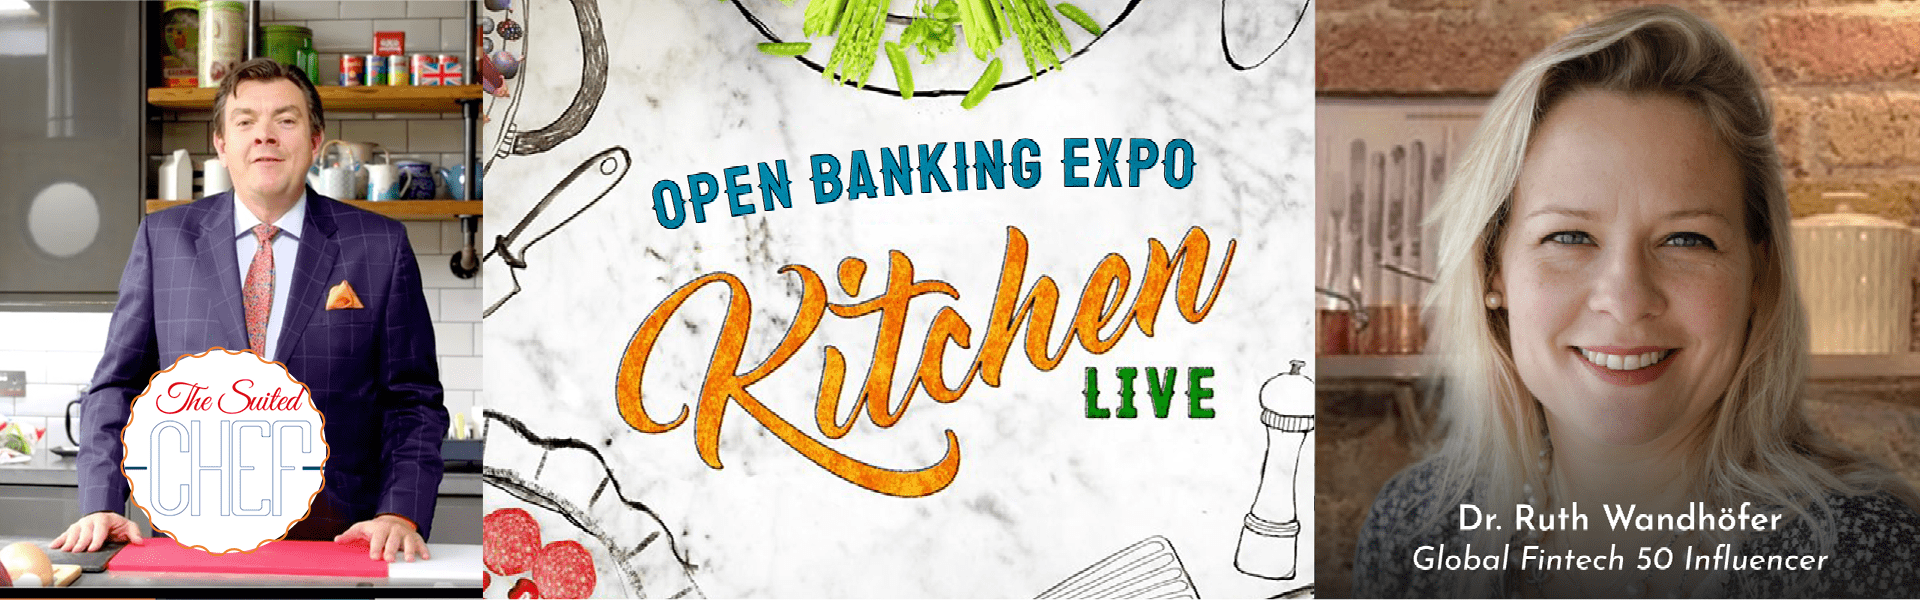 Open-Banking-Expo-Kitchen-Live-Header_2_1920